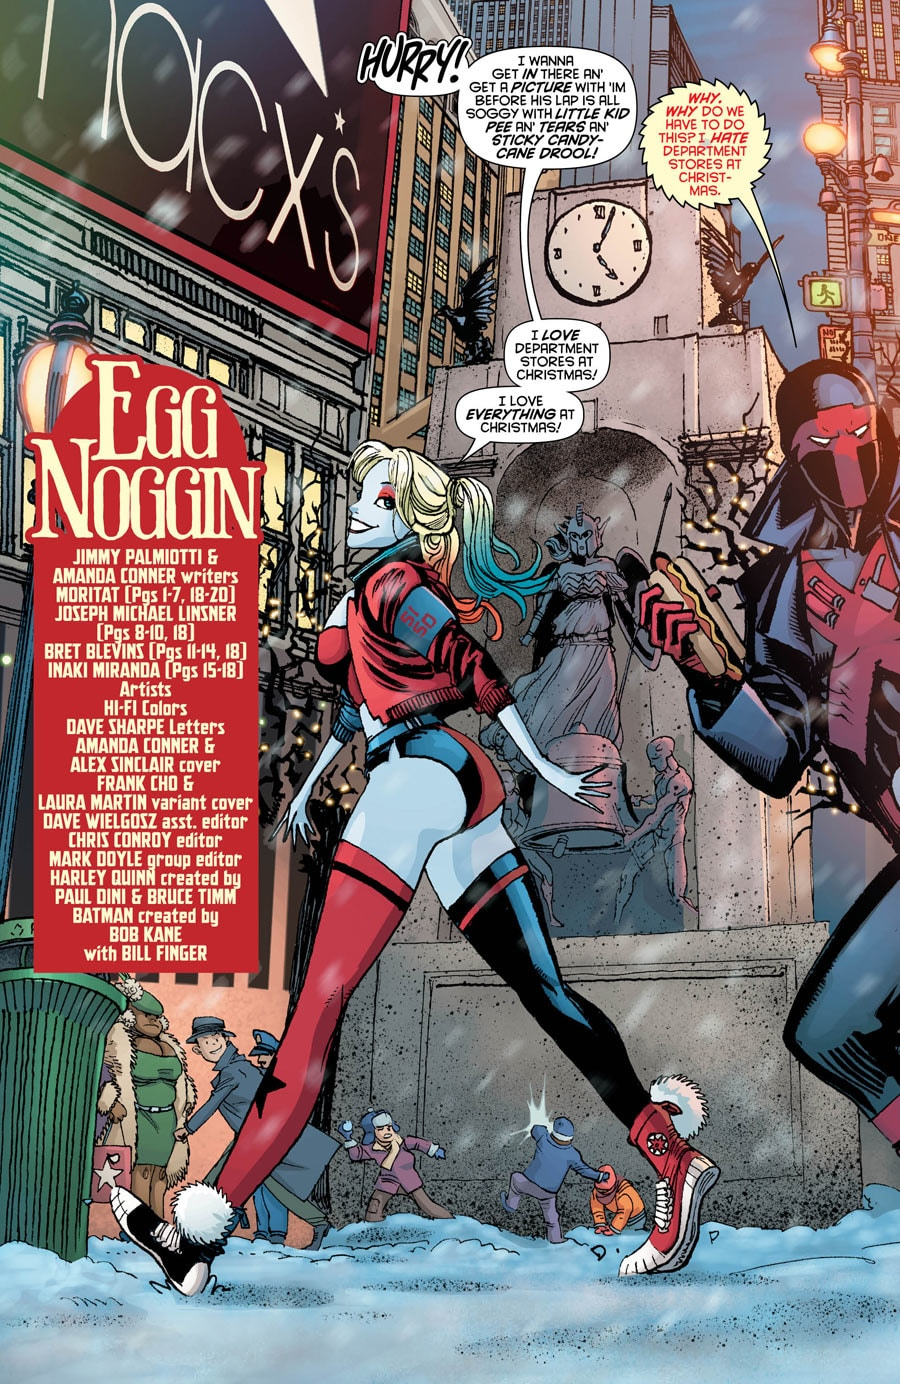 The Movie Sleuth Images Dc Comics Harley Quinn 10 Preview